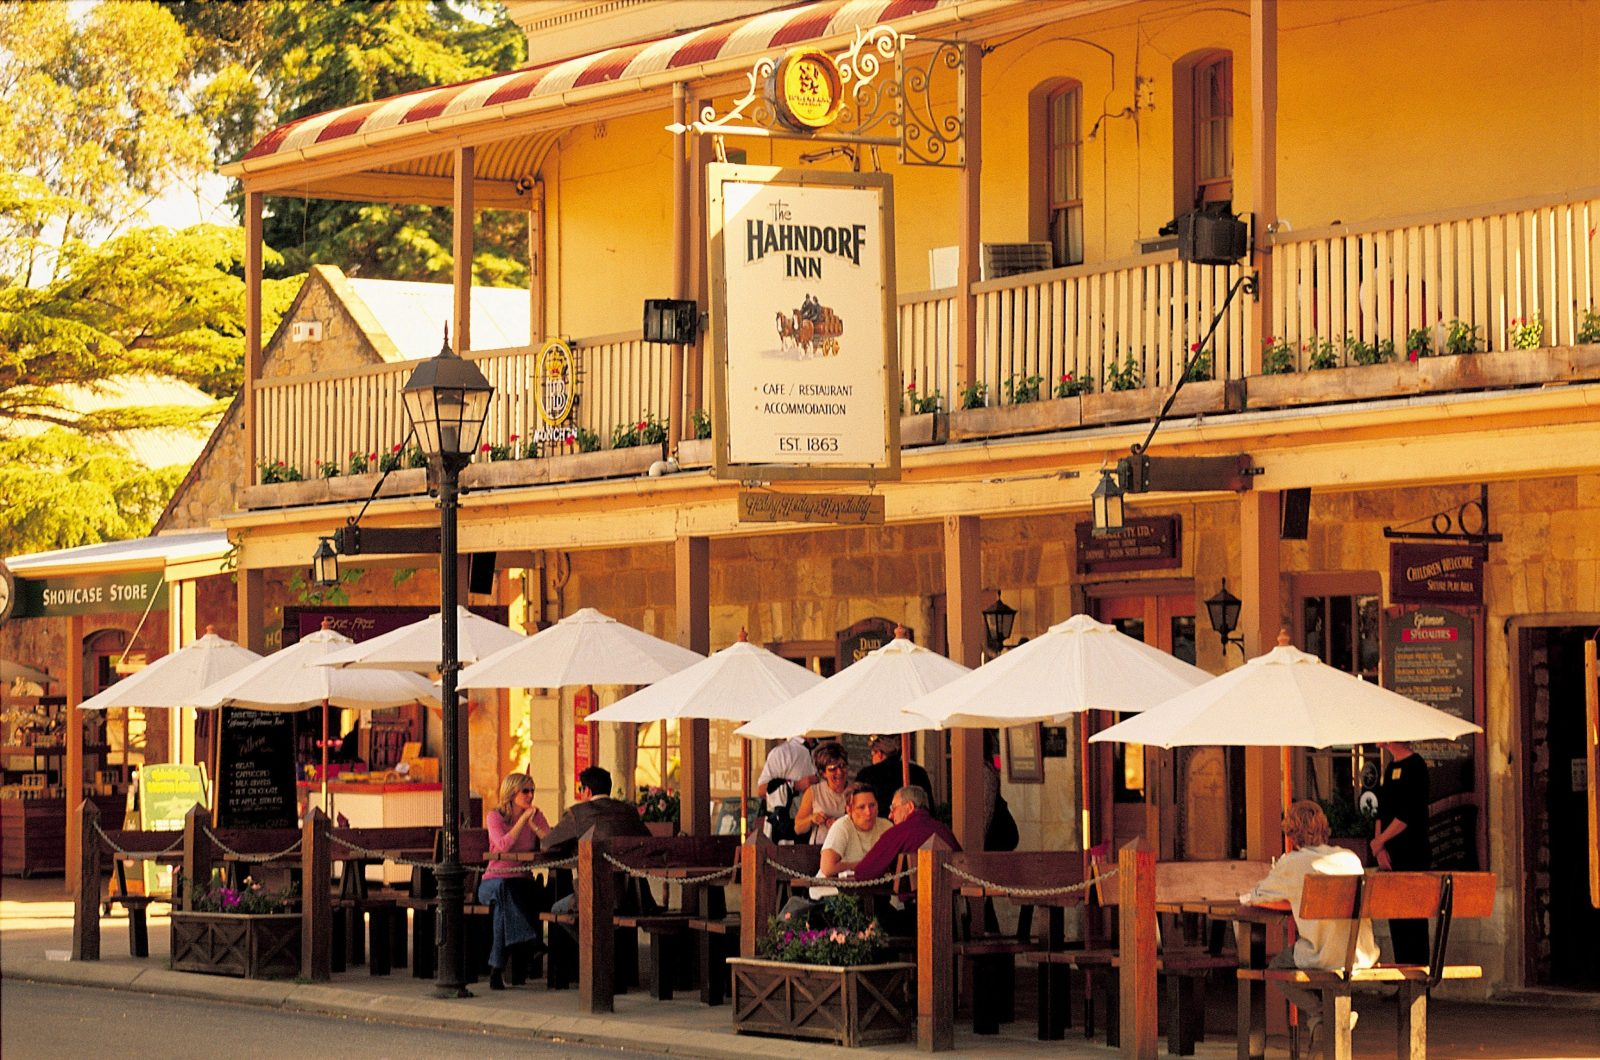 Hahndorf Inn, Adelaide Hills, Traditional German Meals